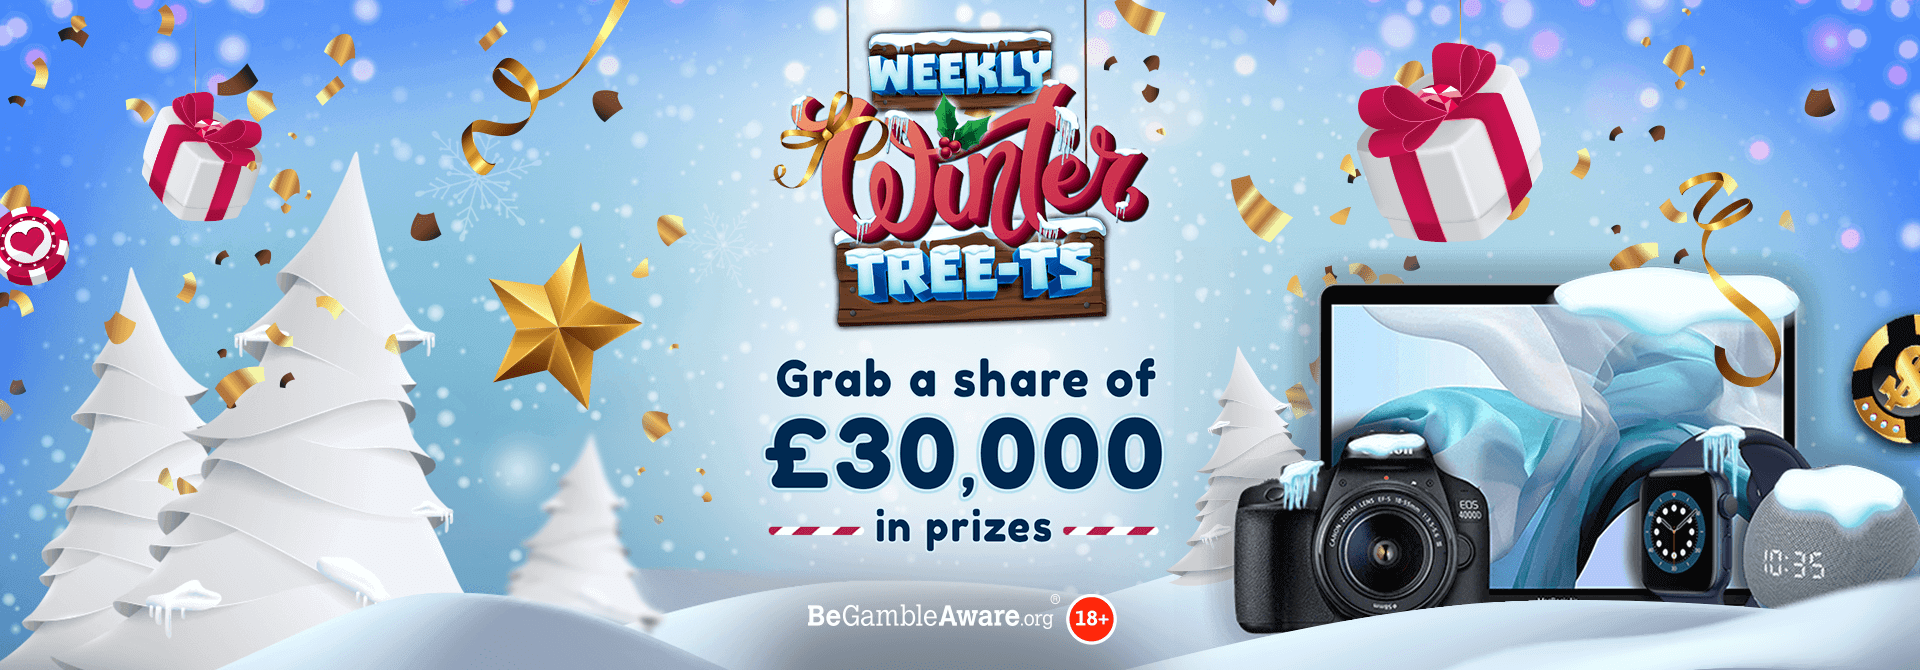 Win a share of £30,000 in prizes with PocketWin's Weekly Winter Tree-ts* this Christmas!